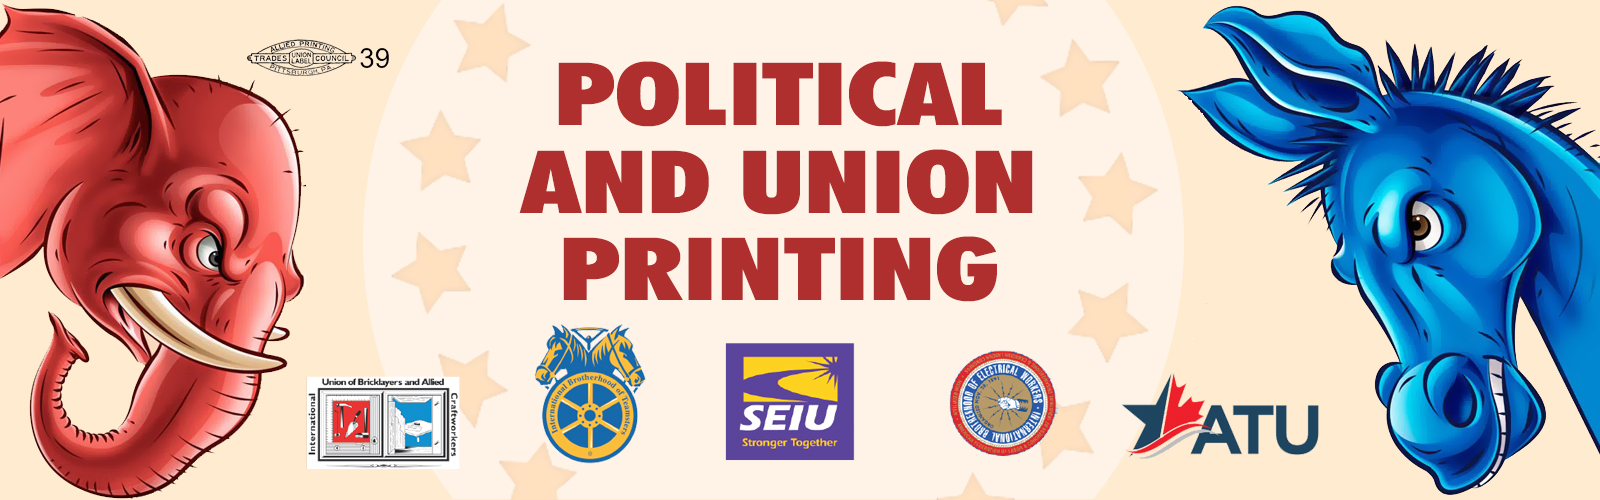 Political Sign Printing | Custom Political Signs, Campaign Signs ...